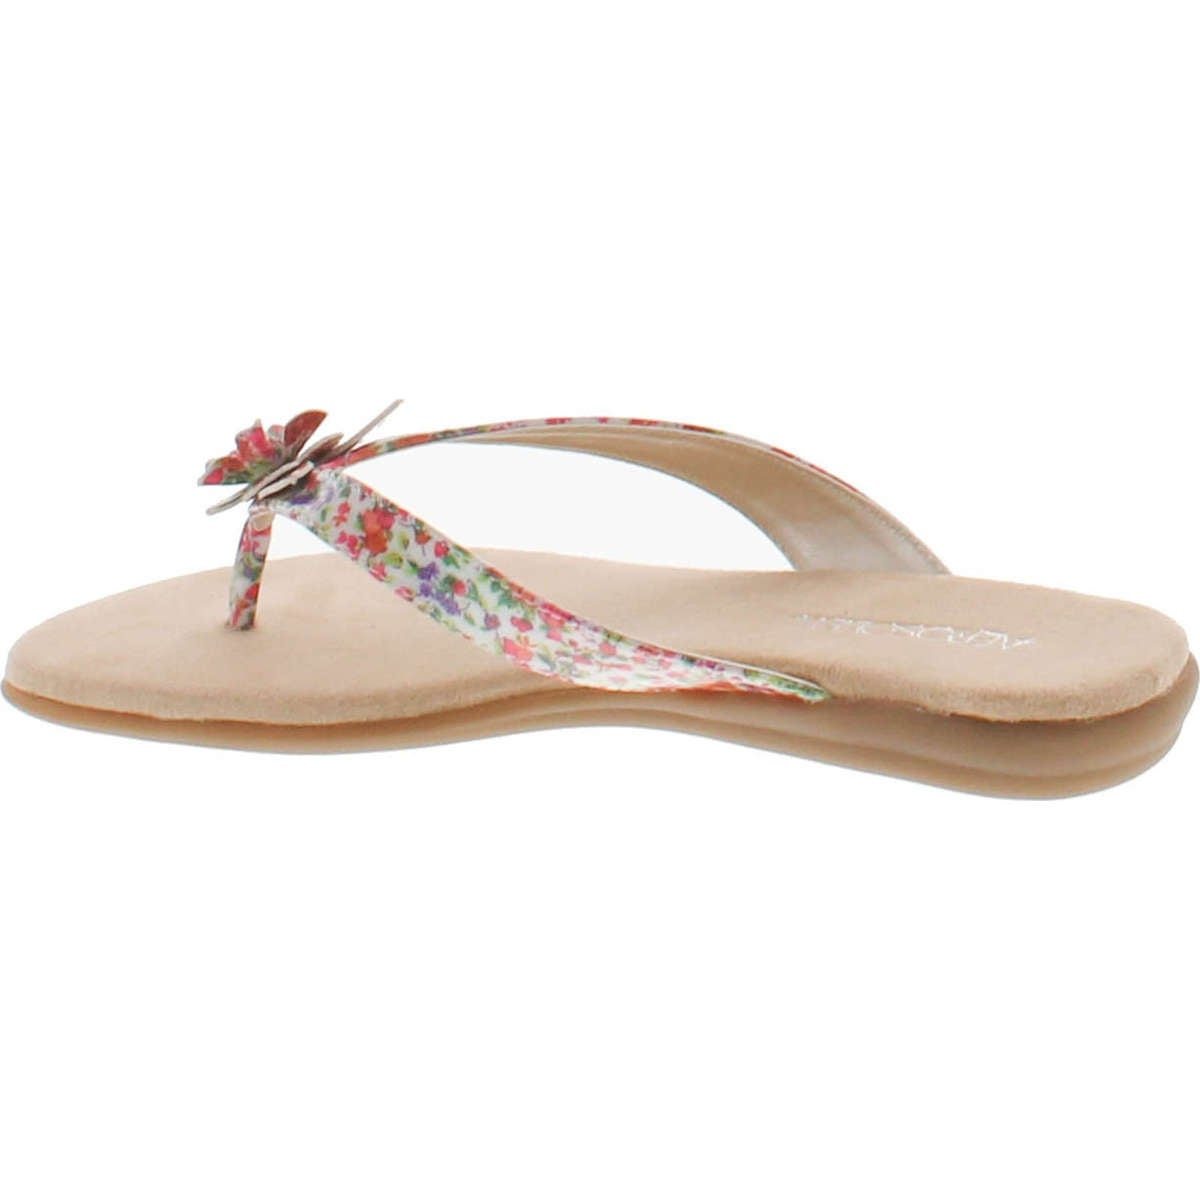 93f02e52002f Shop Aerosoles Women s Branchlet Sandals - Free Shipping On Orders Over  45  - Overstock - 14381415